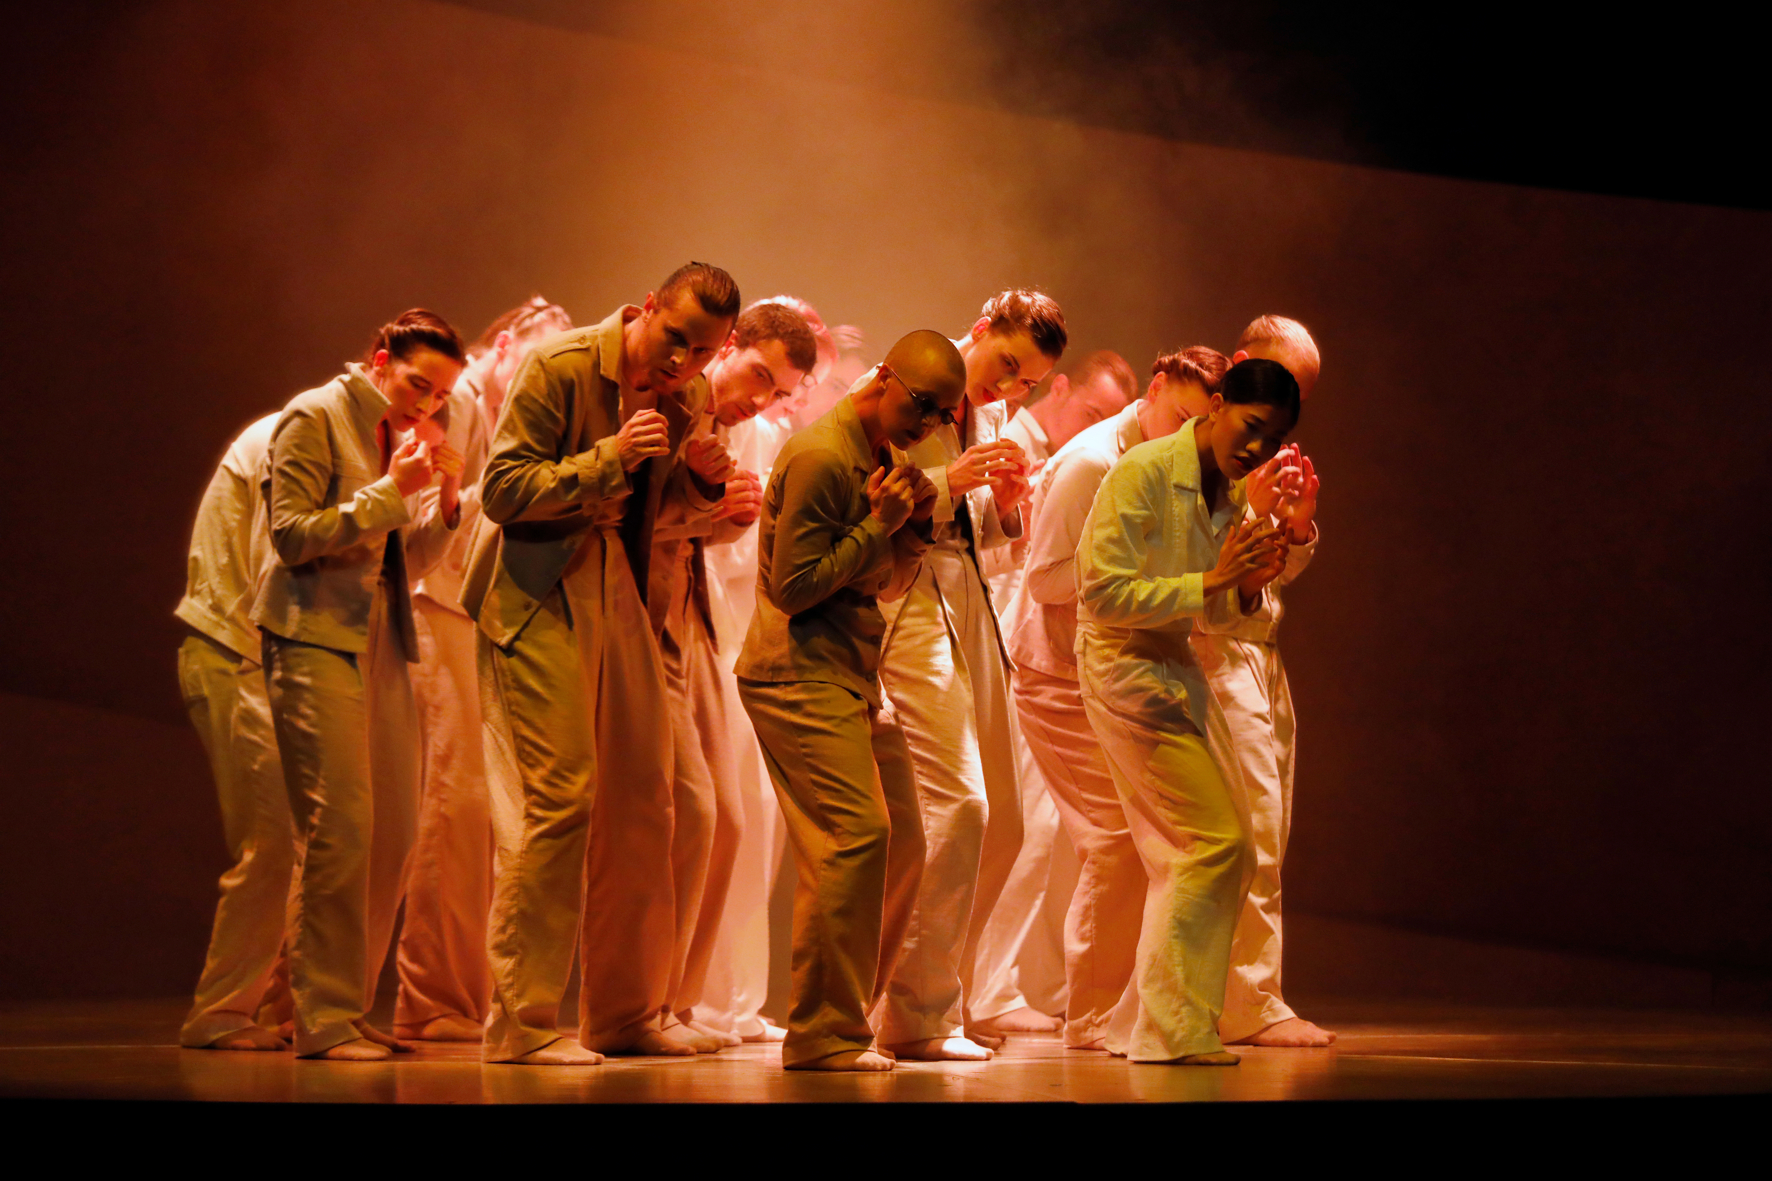 A group of dancers with their hands as fists in front of their chests, leaning forward and modestly dancing in orange lighting.